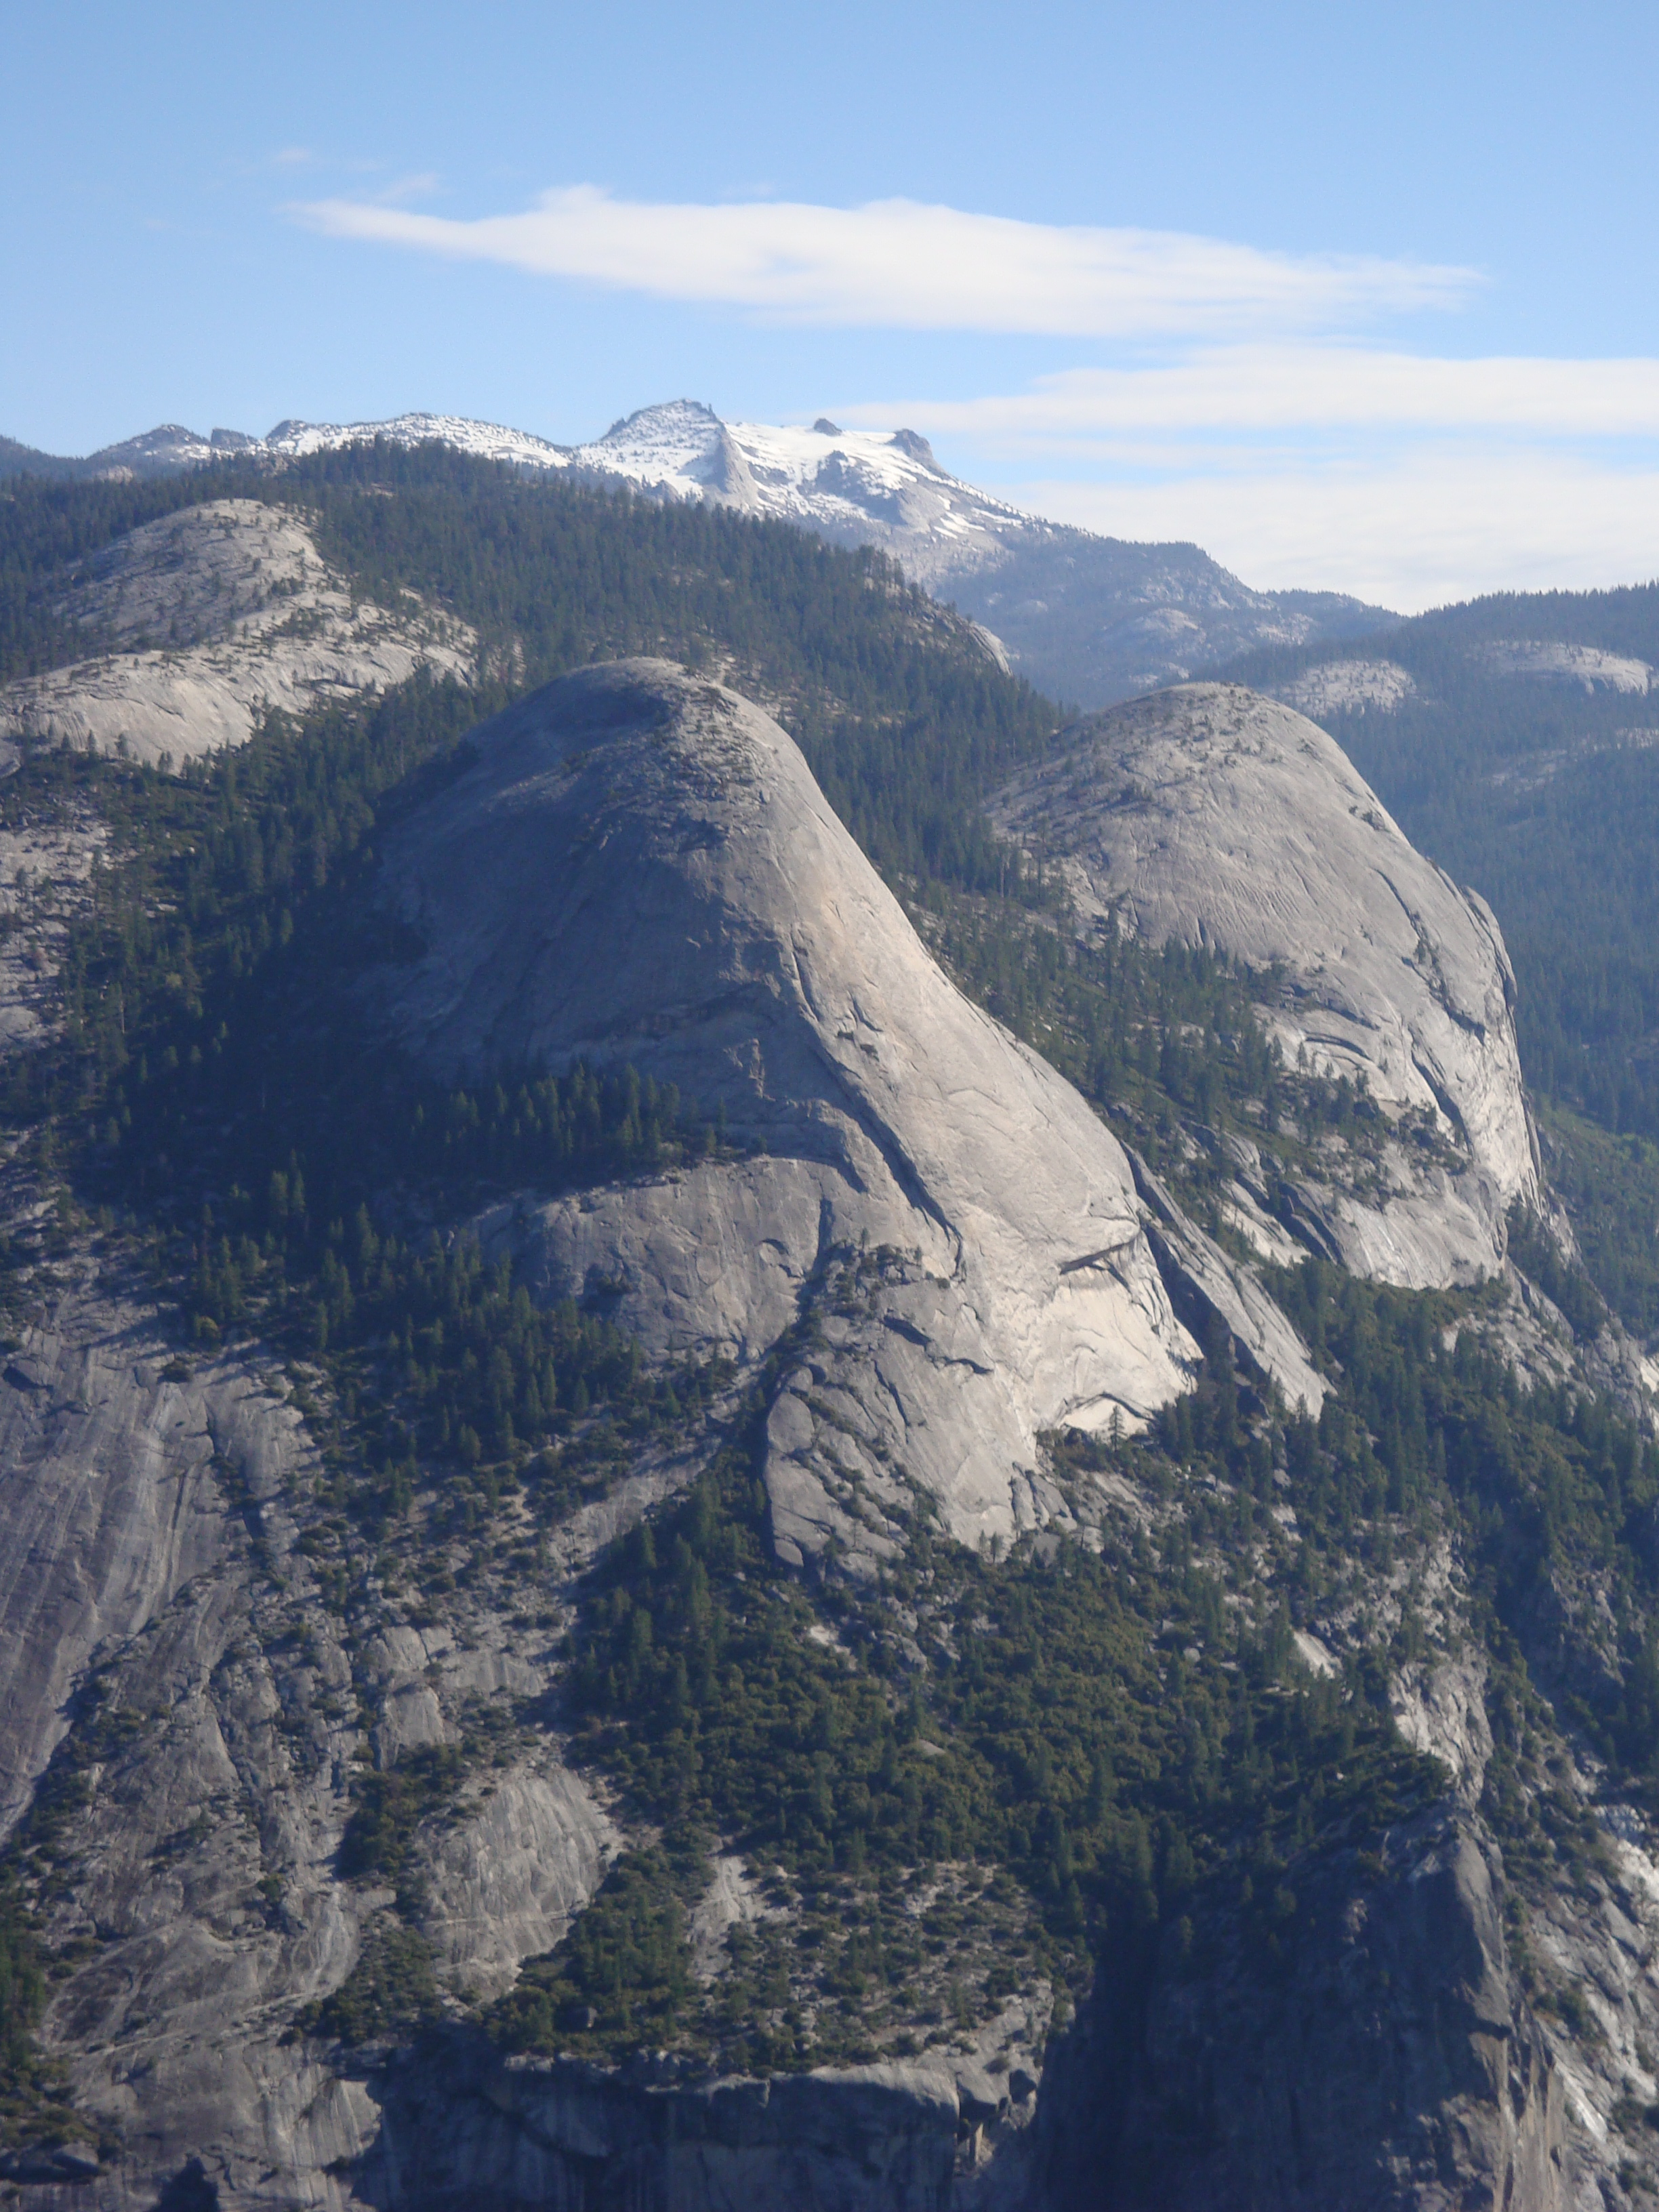 North Dome and Basket Dome - June 2008 - North Dome (left) and Basket Dome (right) as viewed from Glacier Point